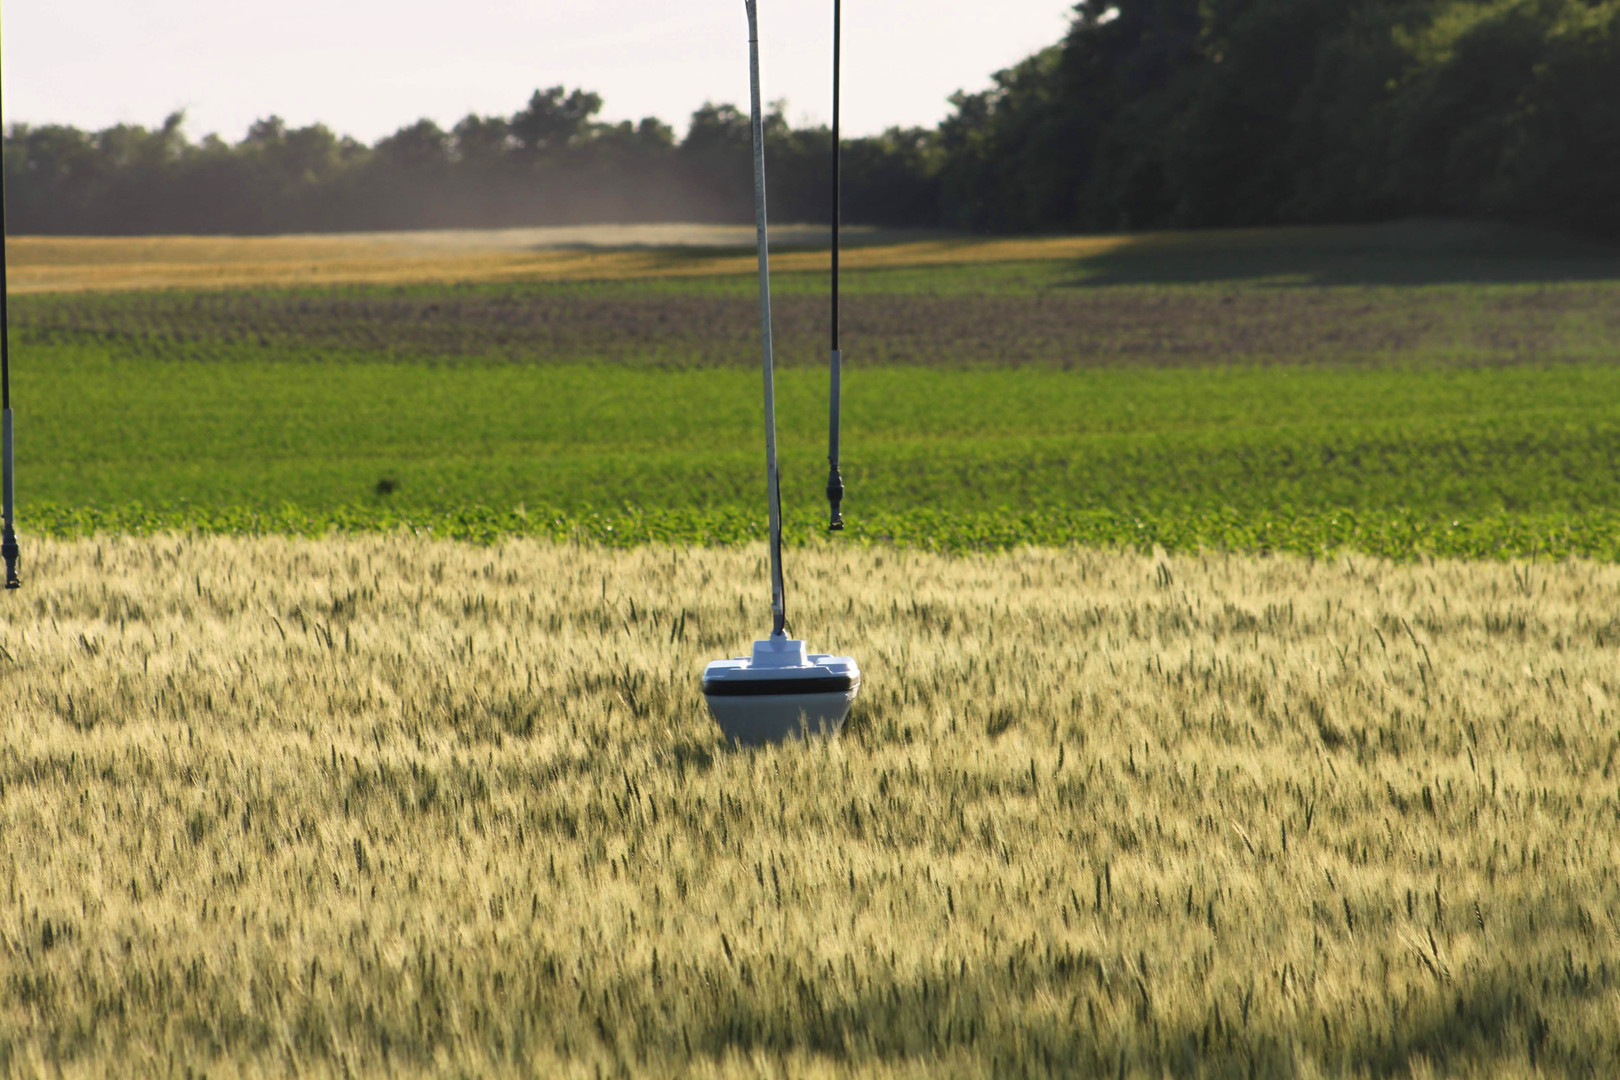 The non-invasive soil-moisture-sensor is cruising through a wheat field.